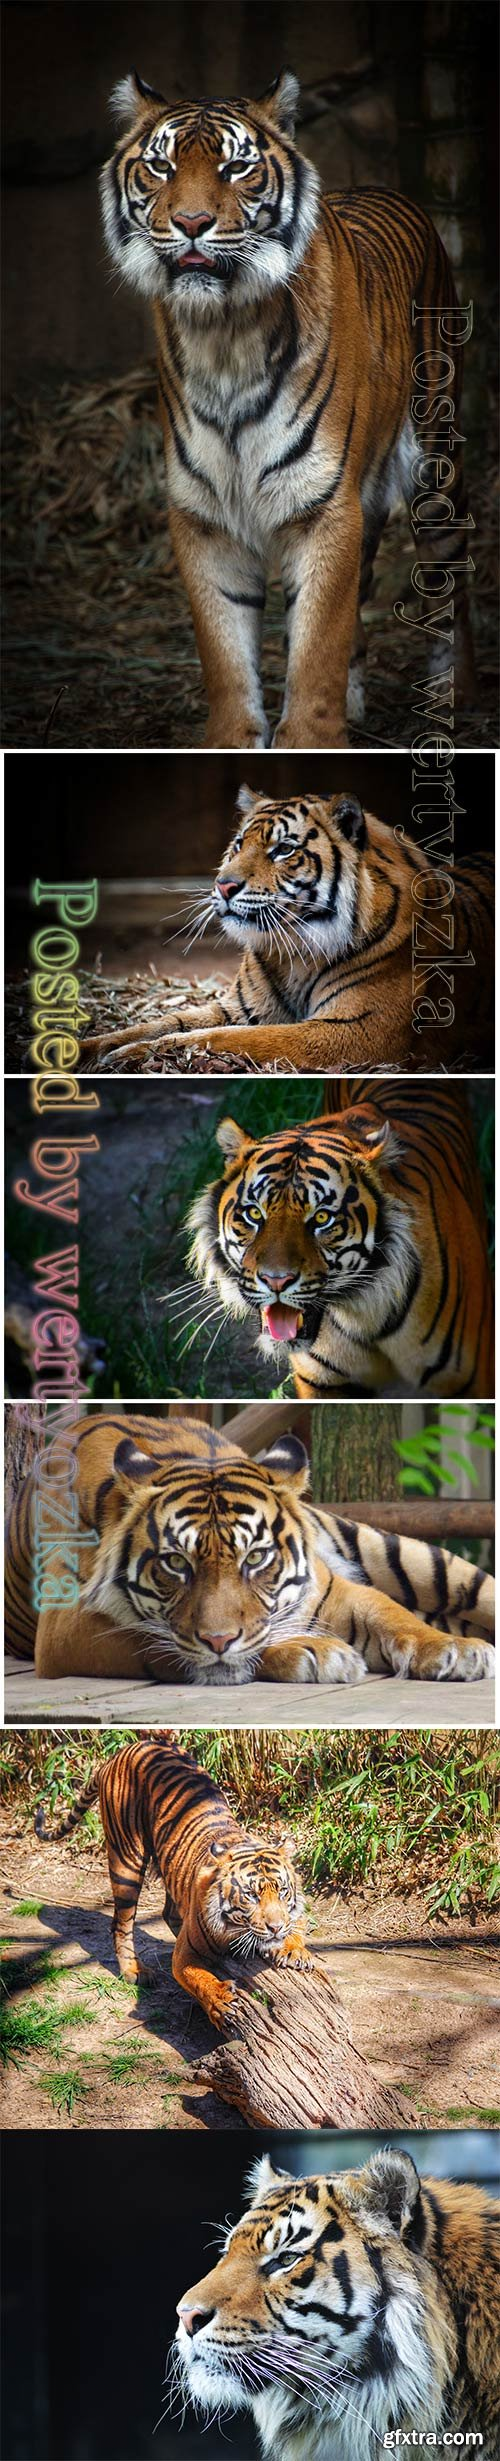 Tiger beautiful stock photo